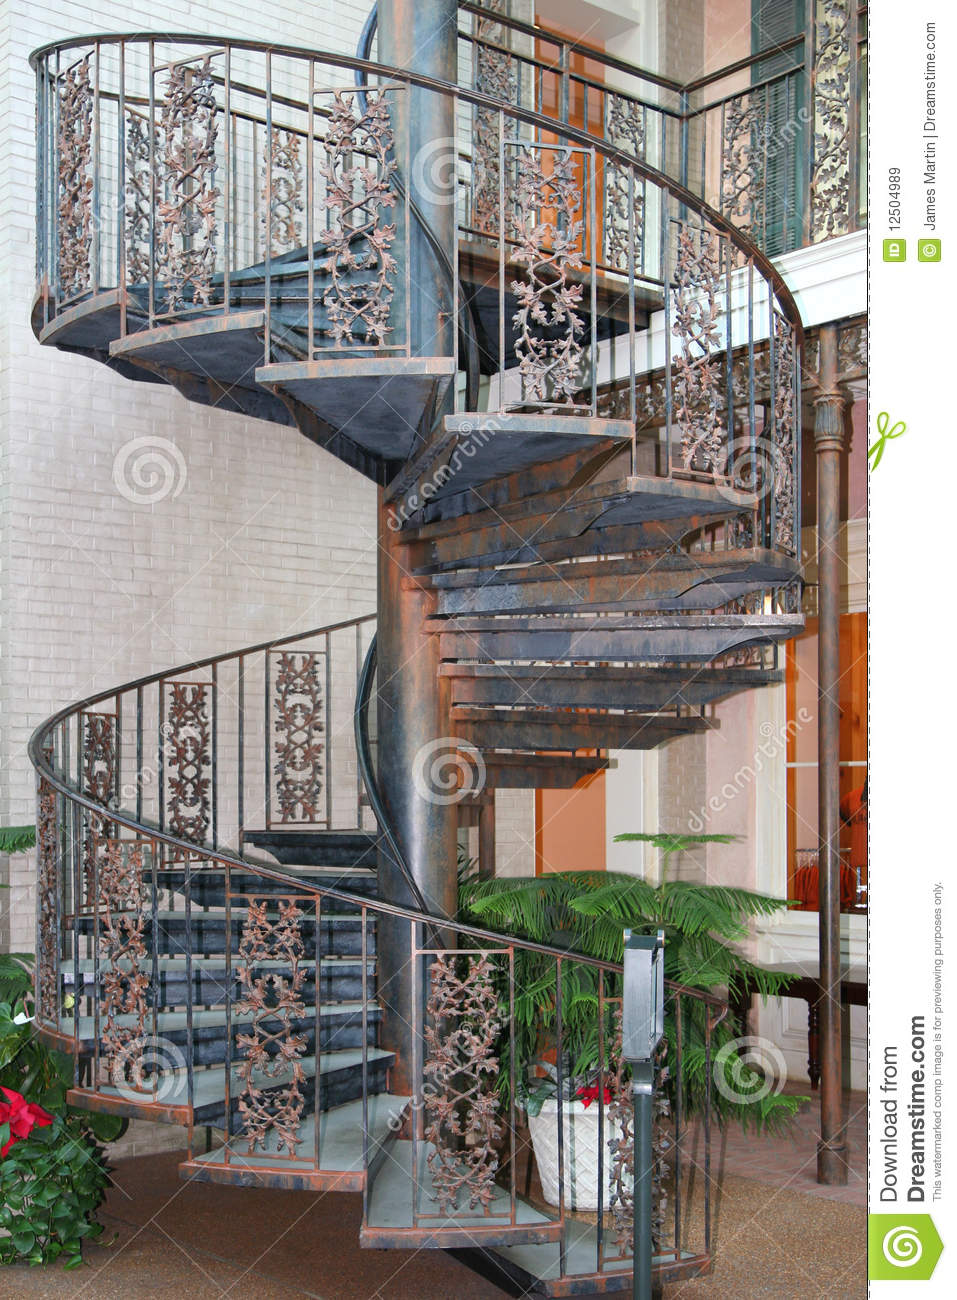 Picture of: Outdoor Spiral Staircase Stock Image Image Of House 12504989